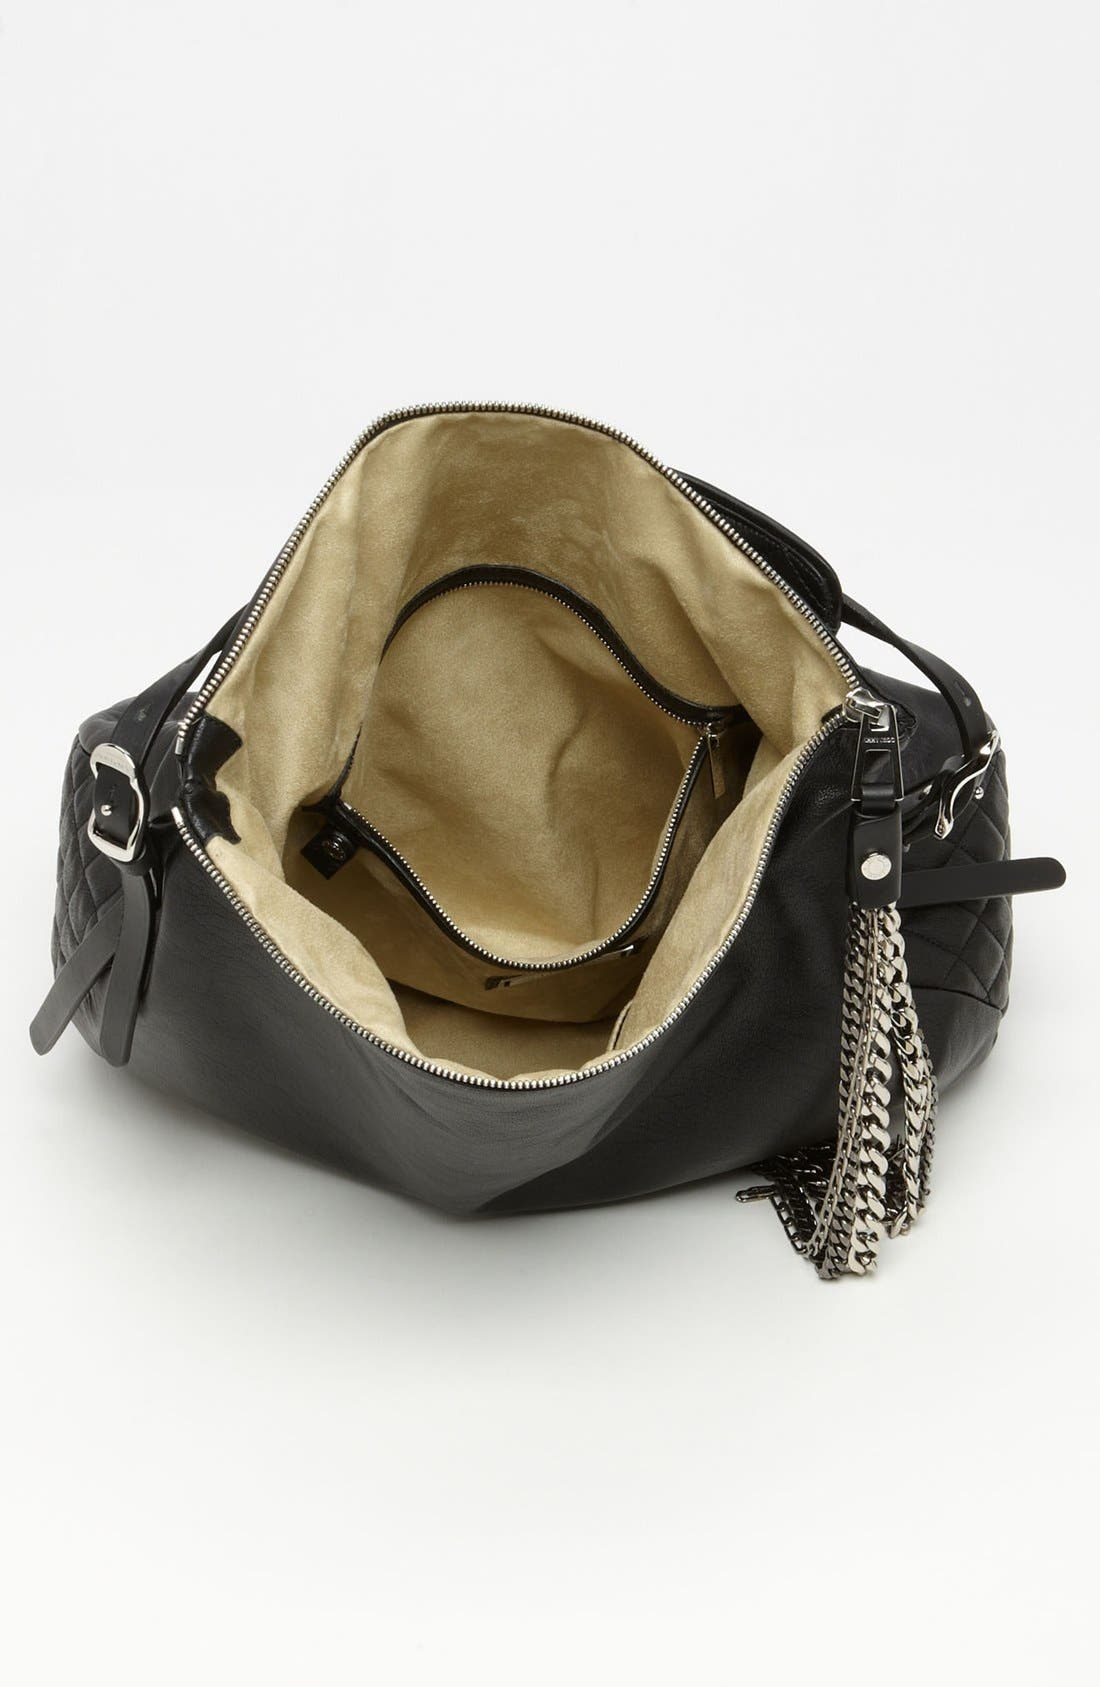 Alternate Image 3  - Jimmy Choo 'Large Boho' Leather Hobo